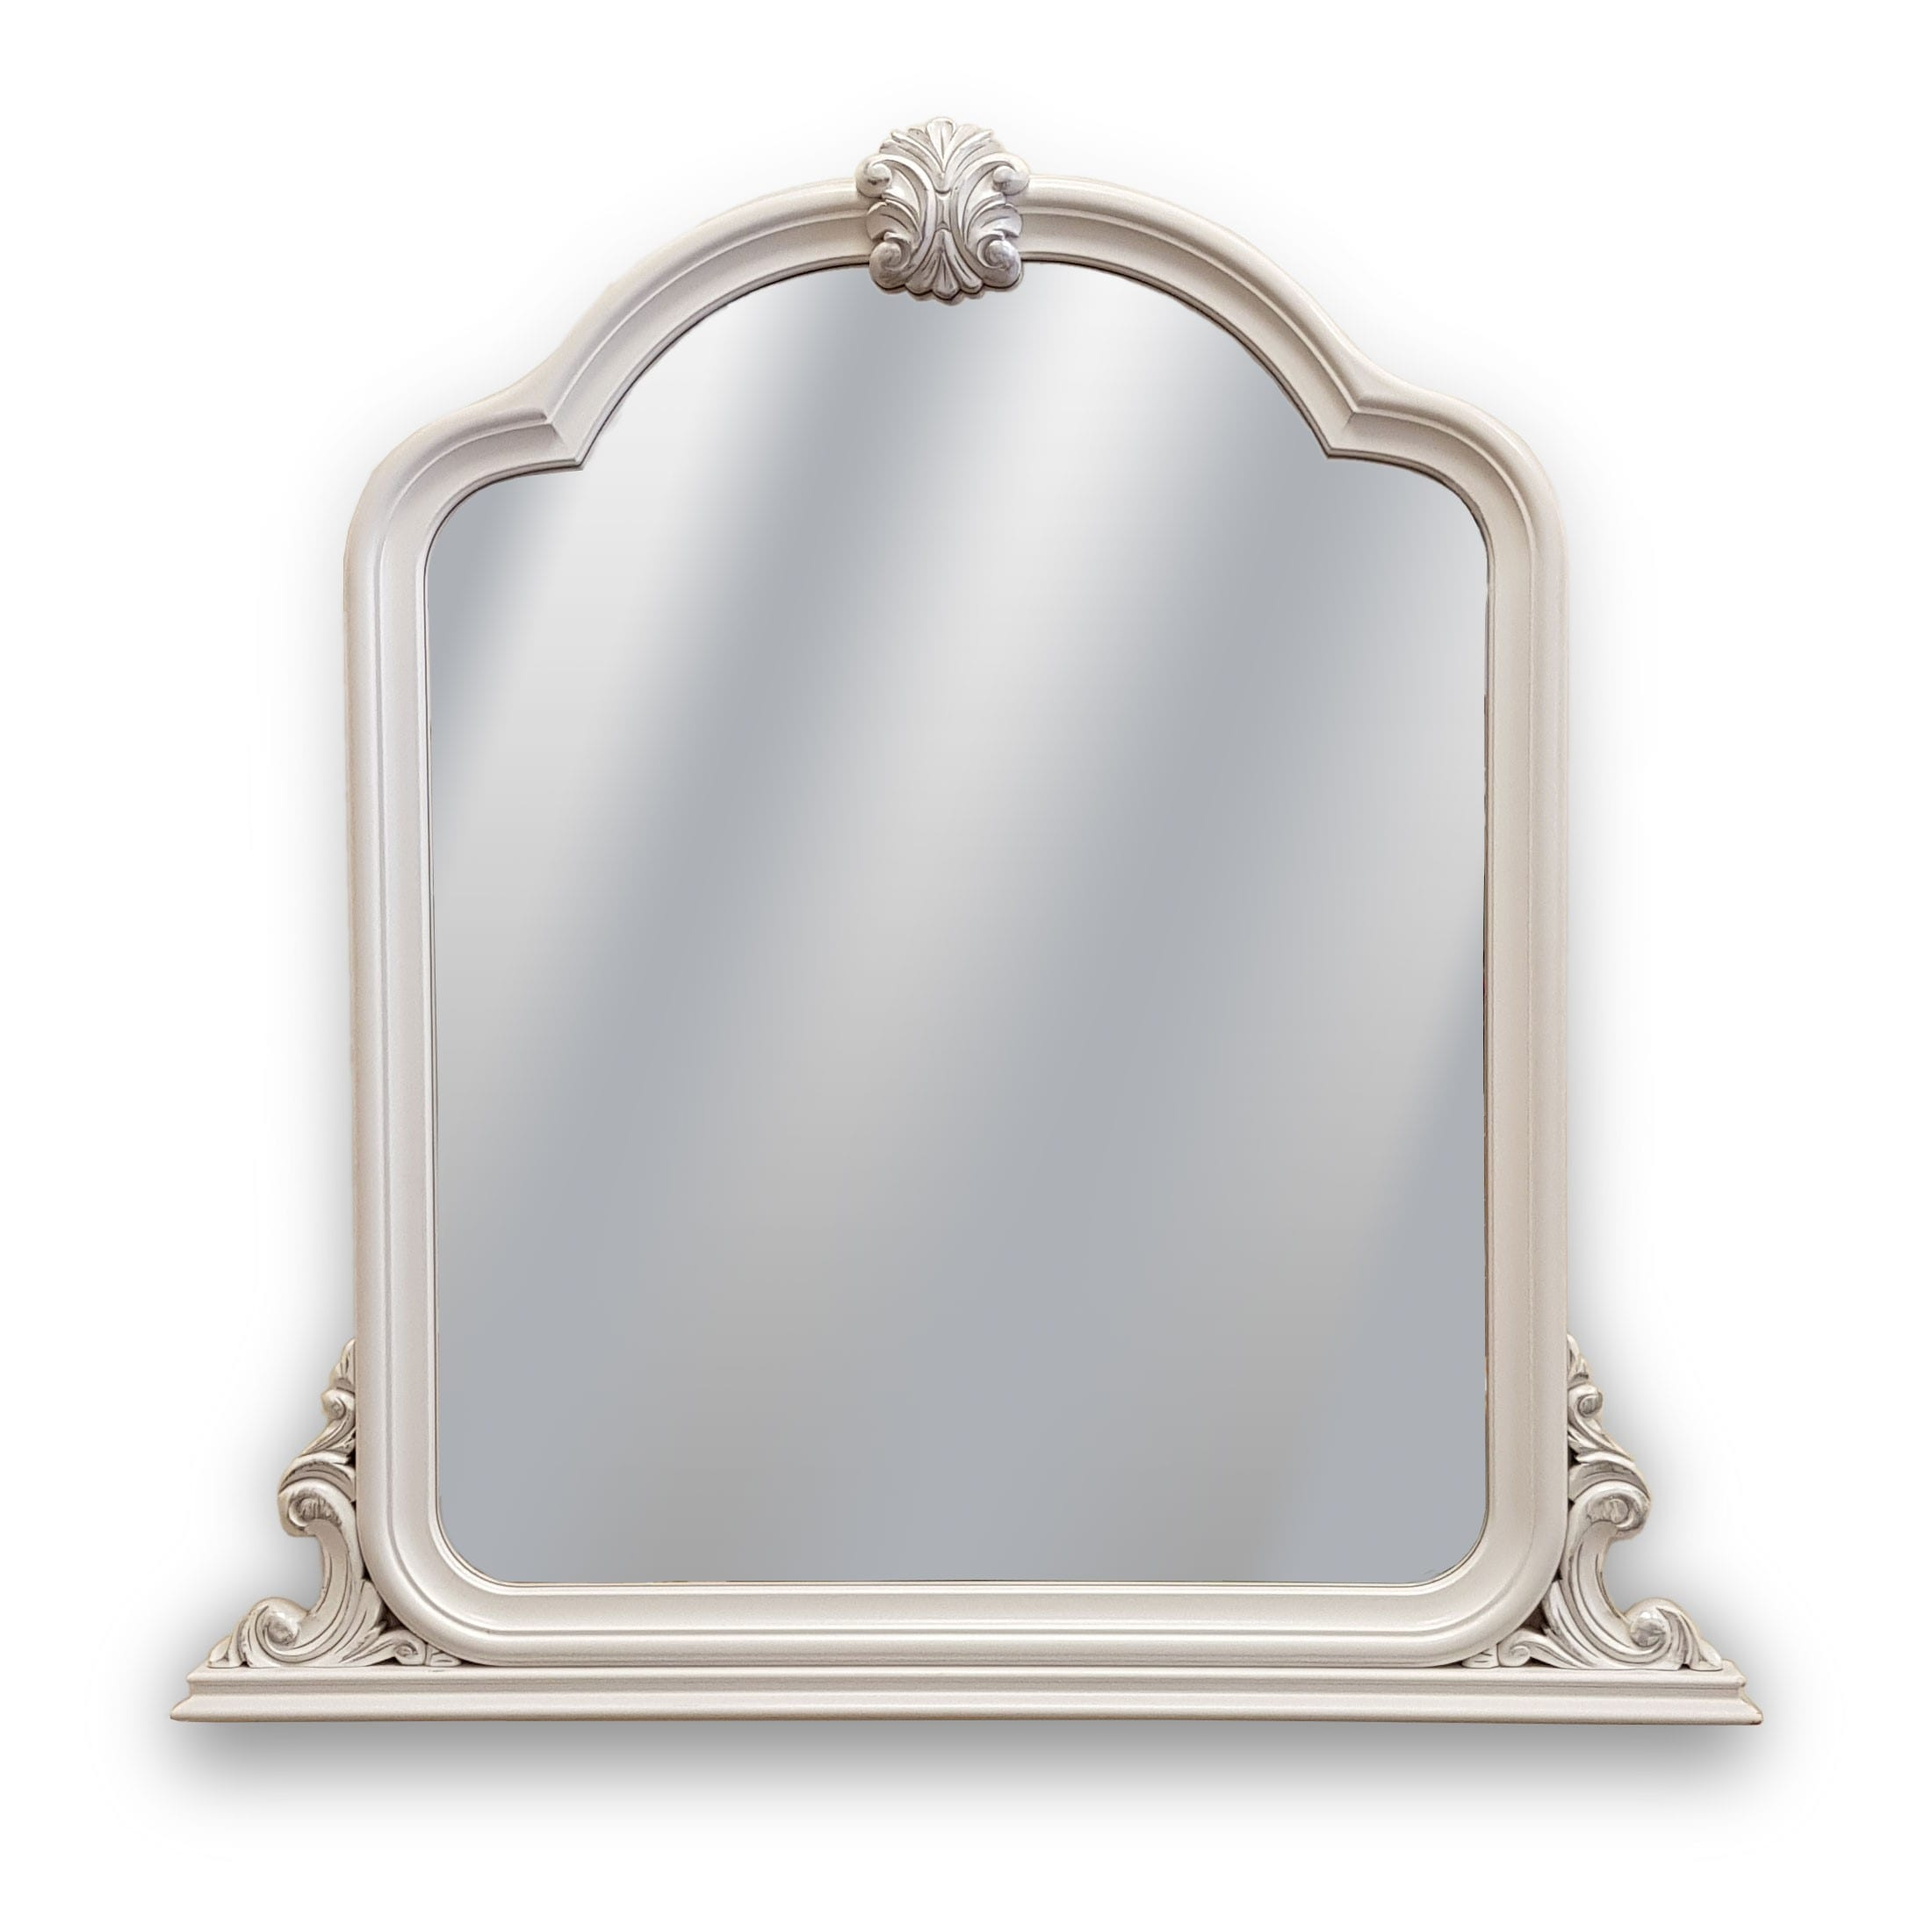 Painted Crested Wall mirror.